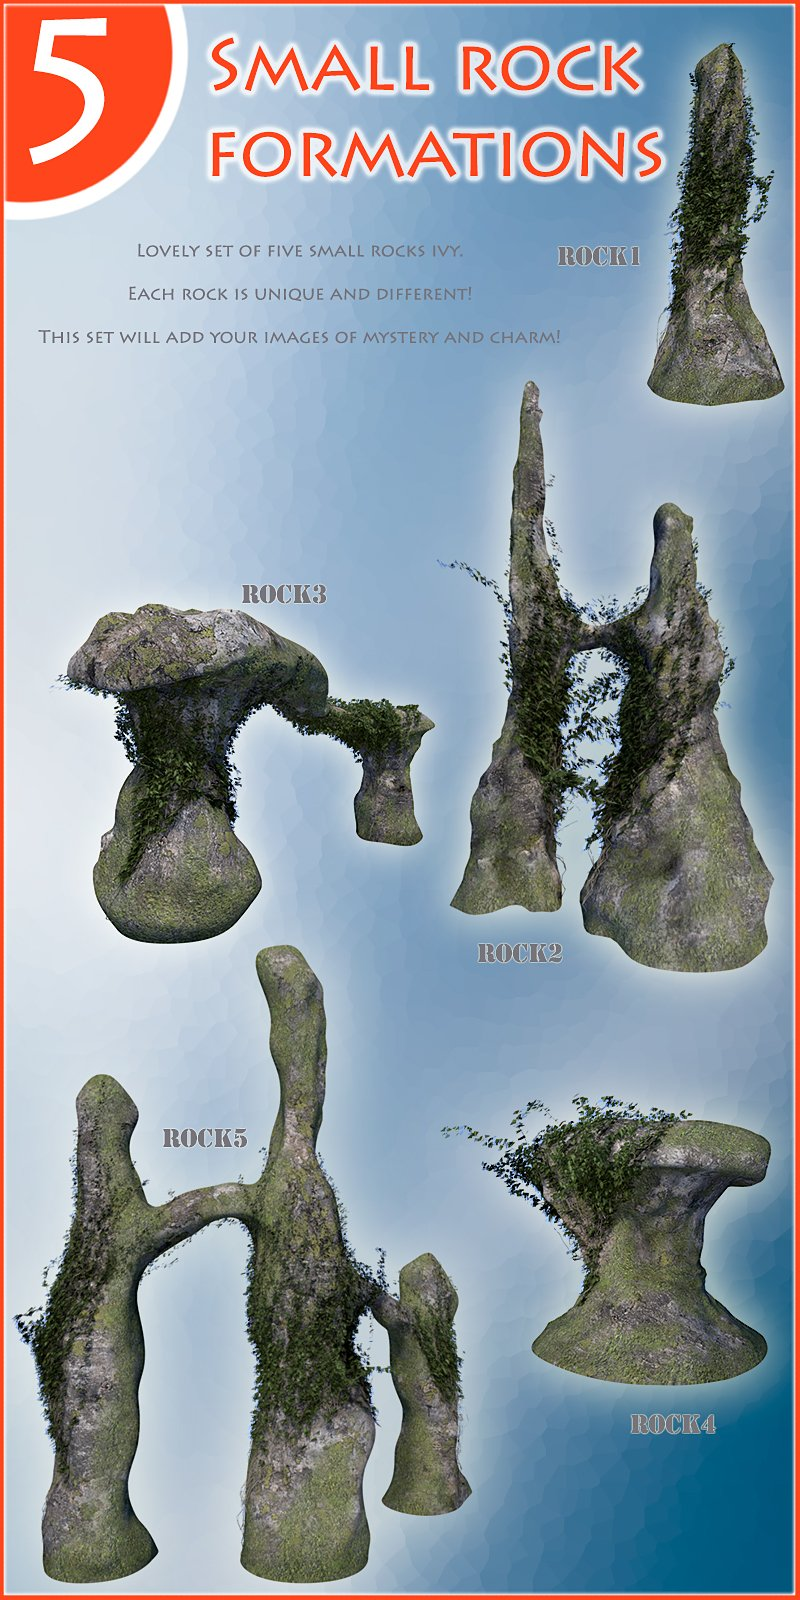 Small rock formations